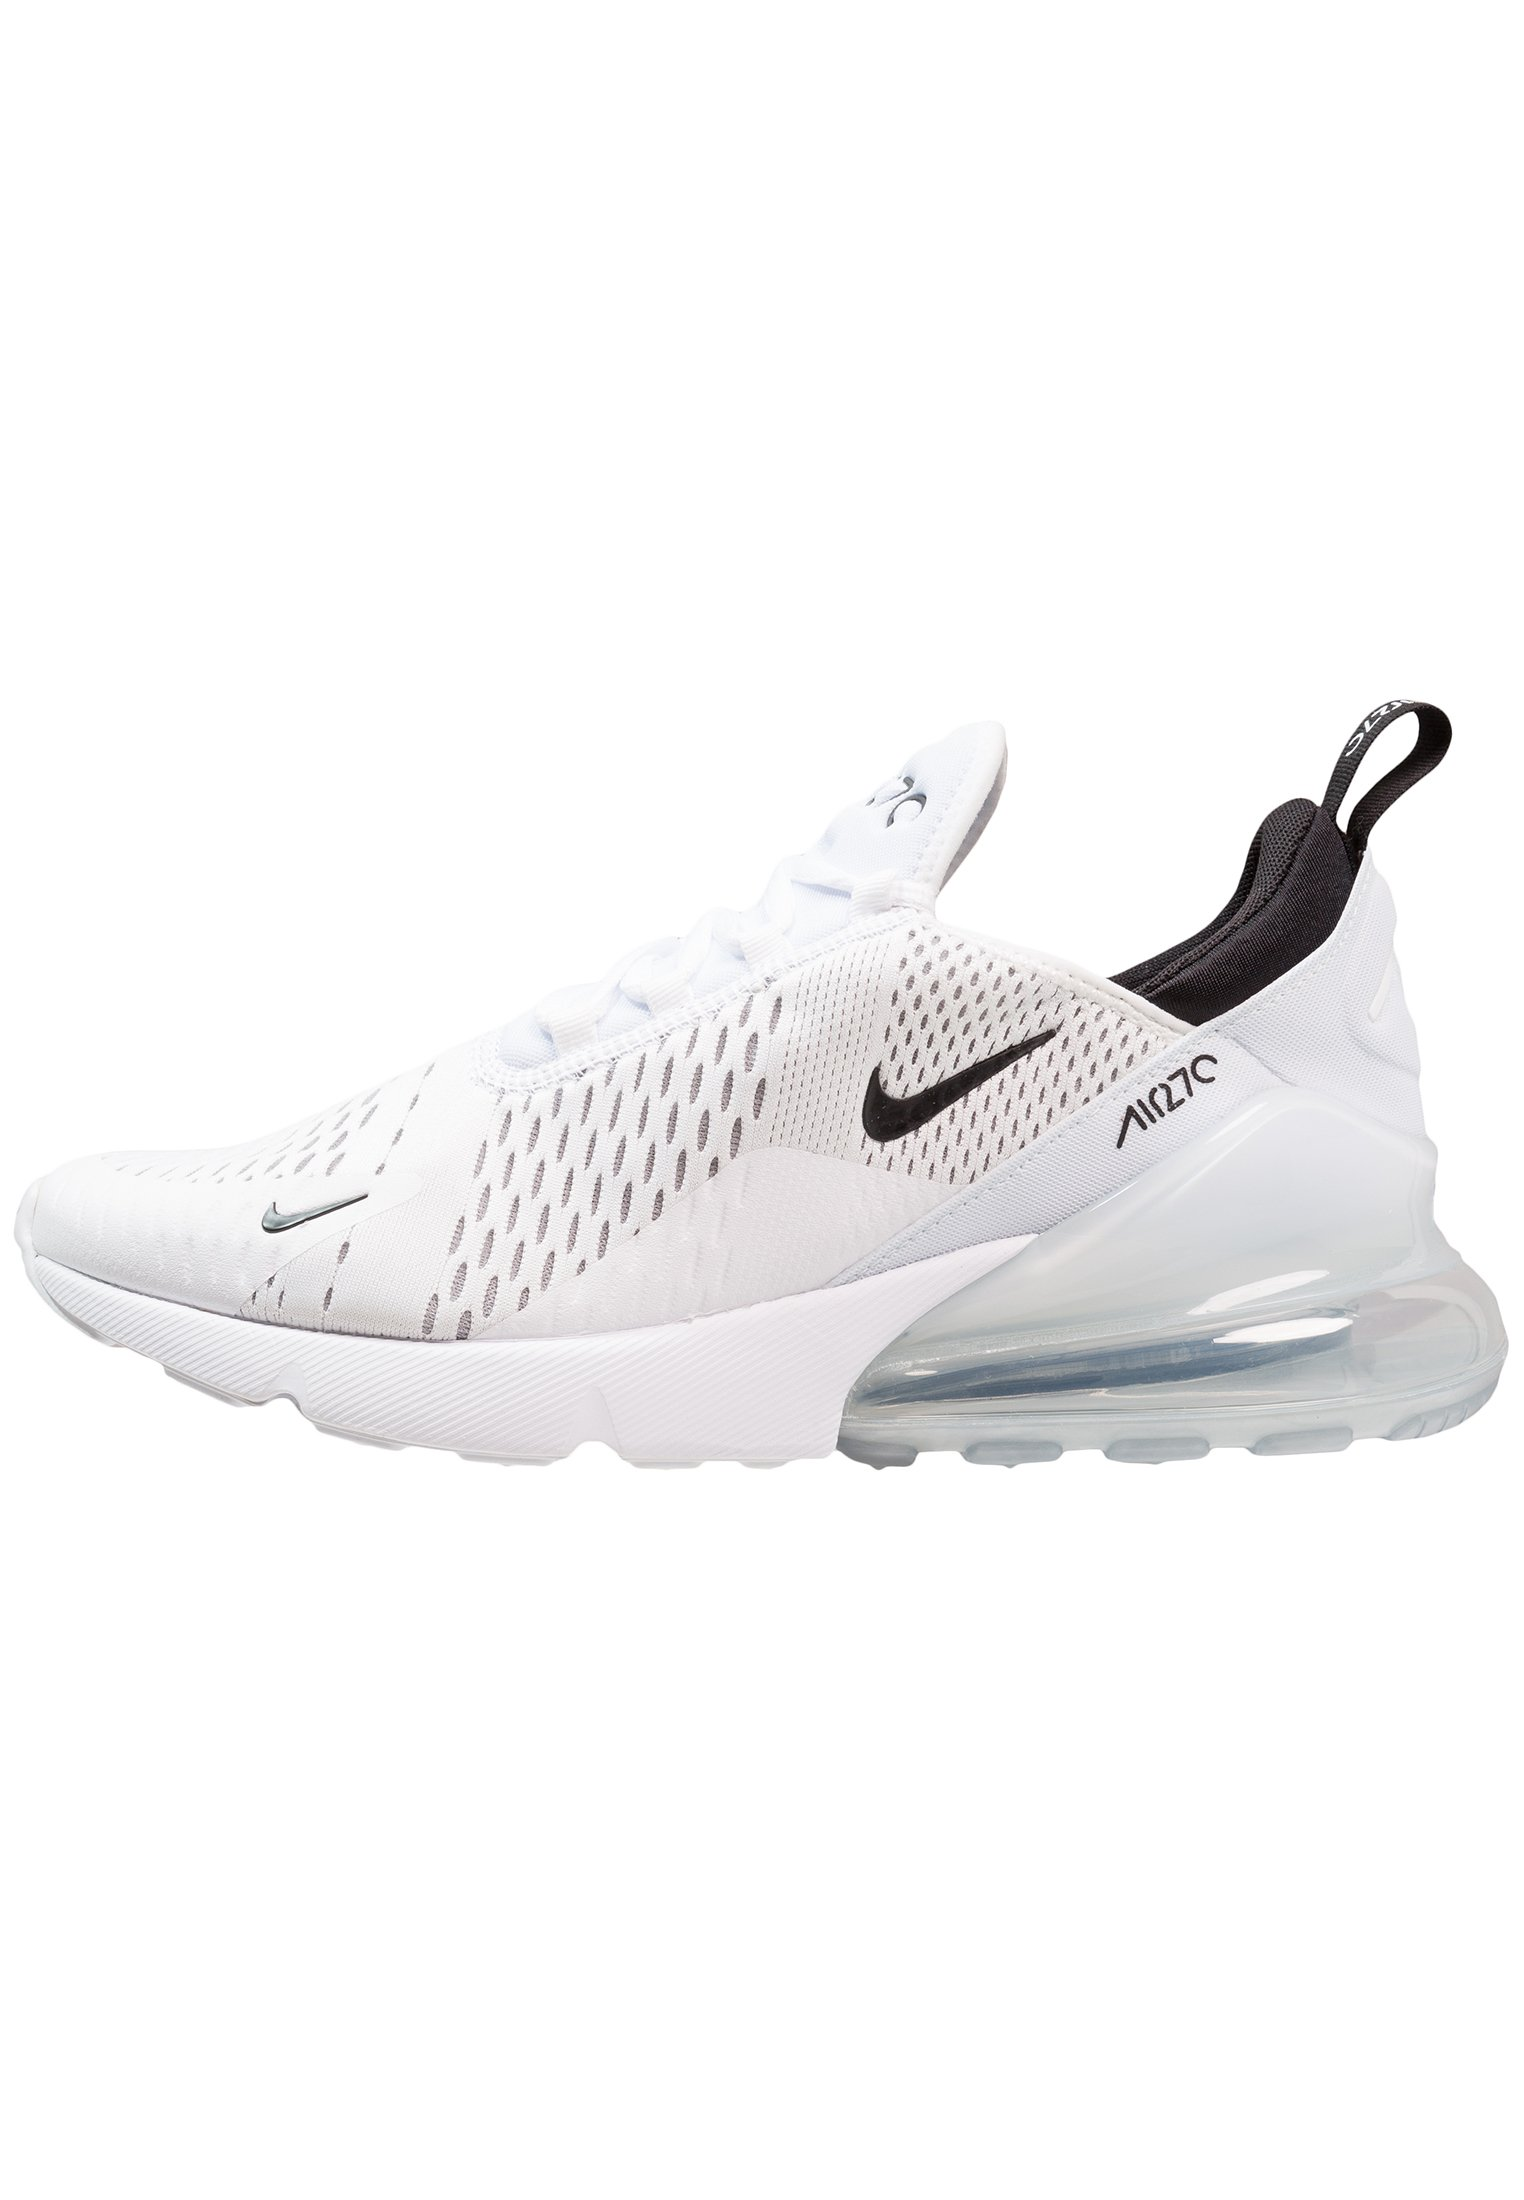 AIR MAX 270 Sneakers whiteblack